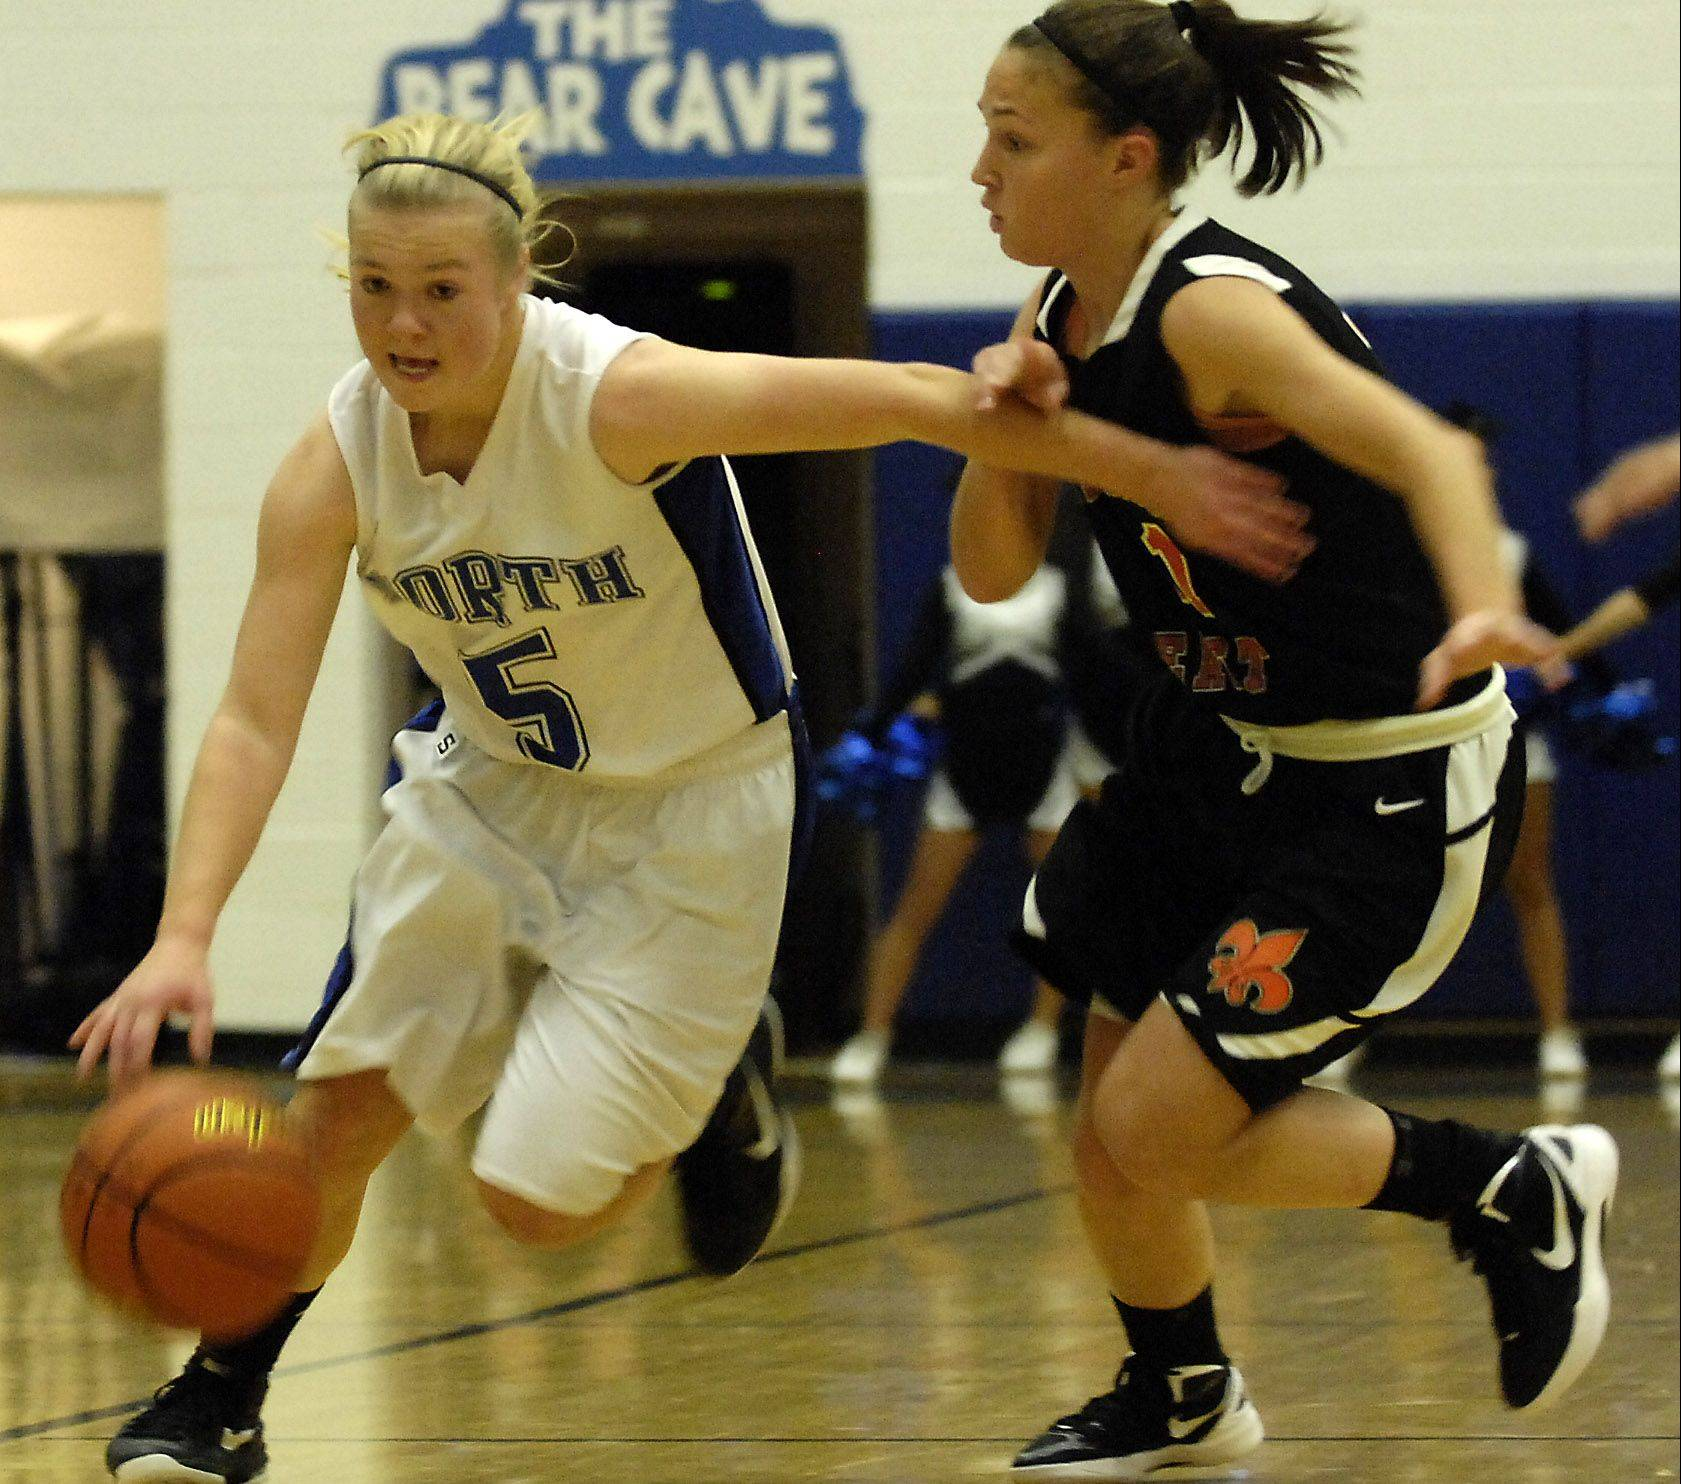 St. Charles North's Natalie Winkates drives against St. Charles East's Carly Pottle Wednesday in St. Charles.